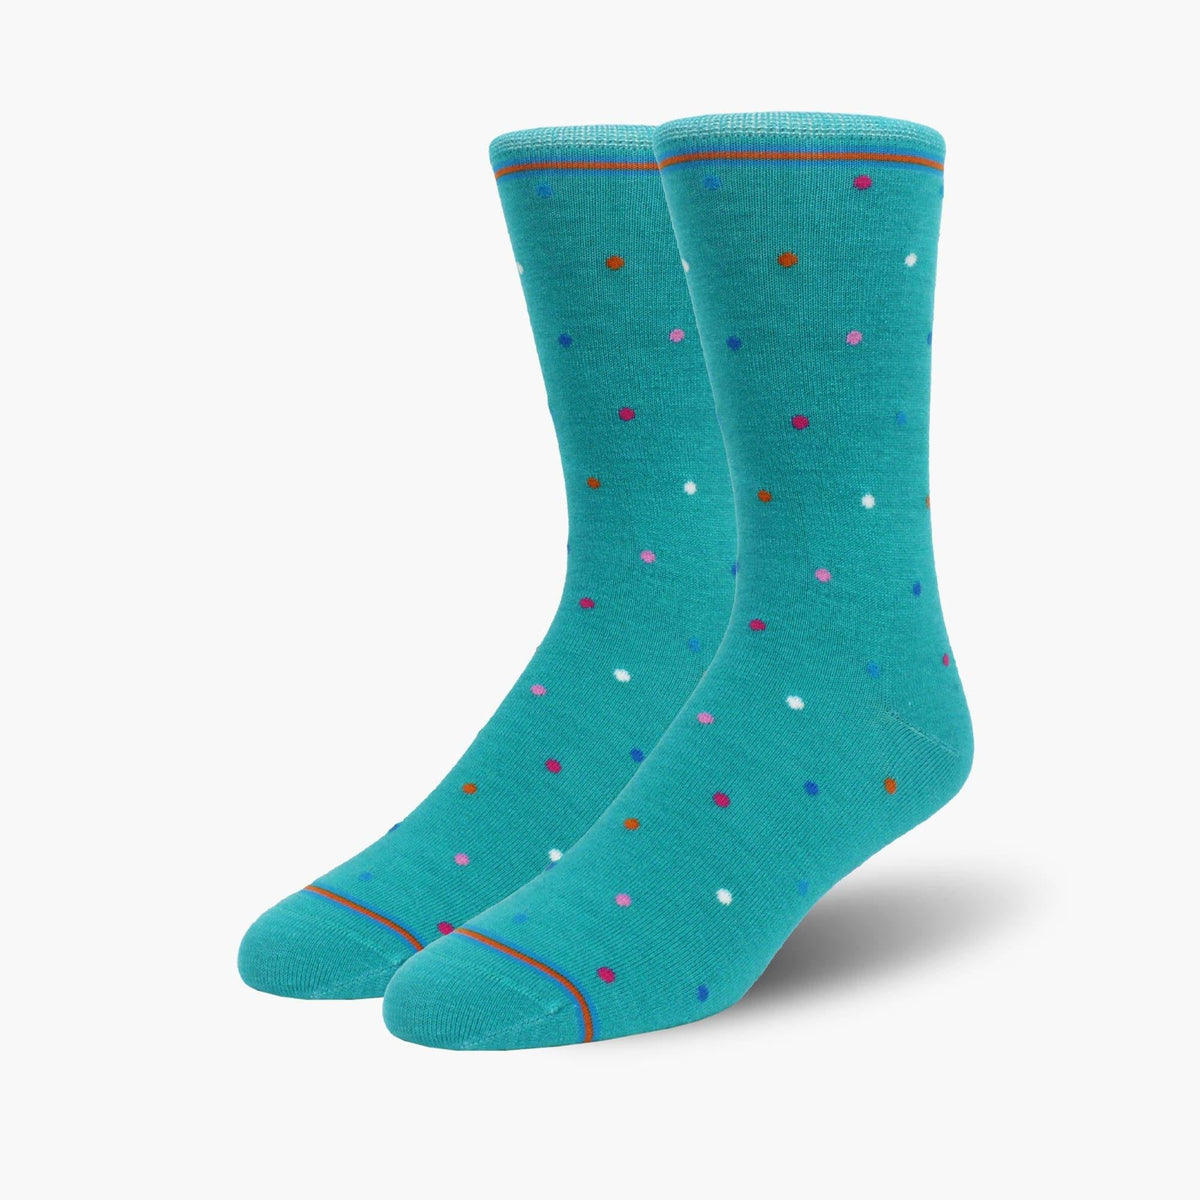 Teal Coloured mixed Polka Dot Merino Wool Dress Swanky Socks